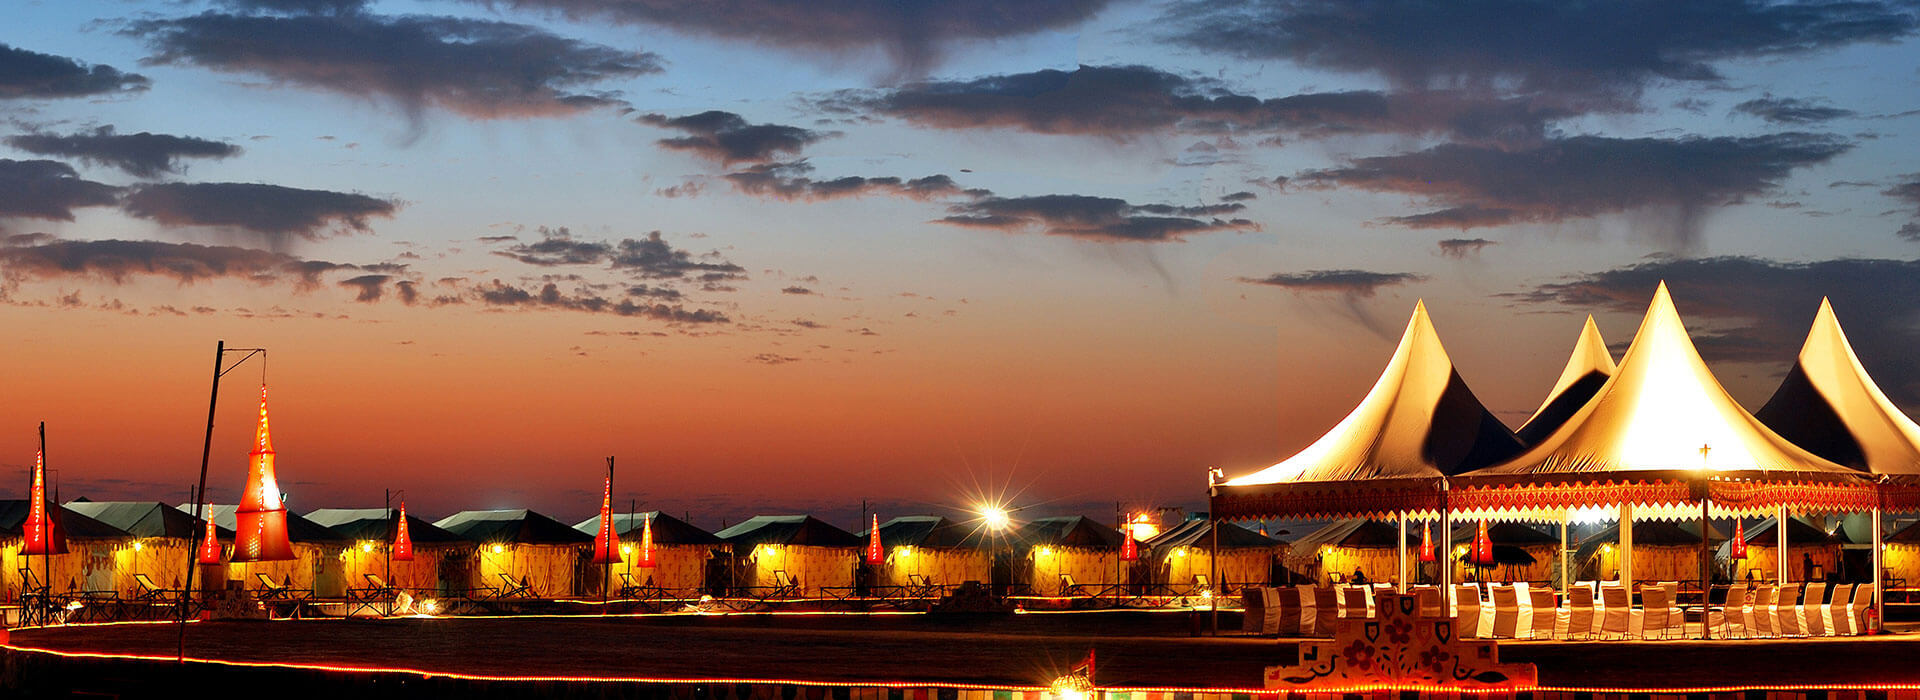 zoomcar_rann-of-kutch-festival-at-night